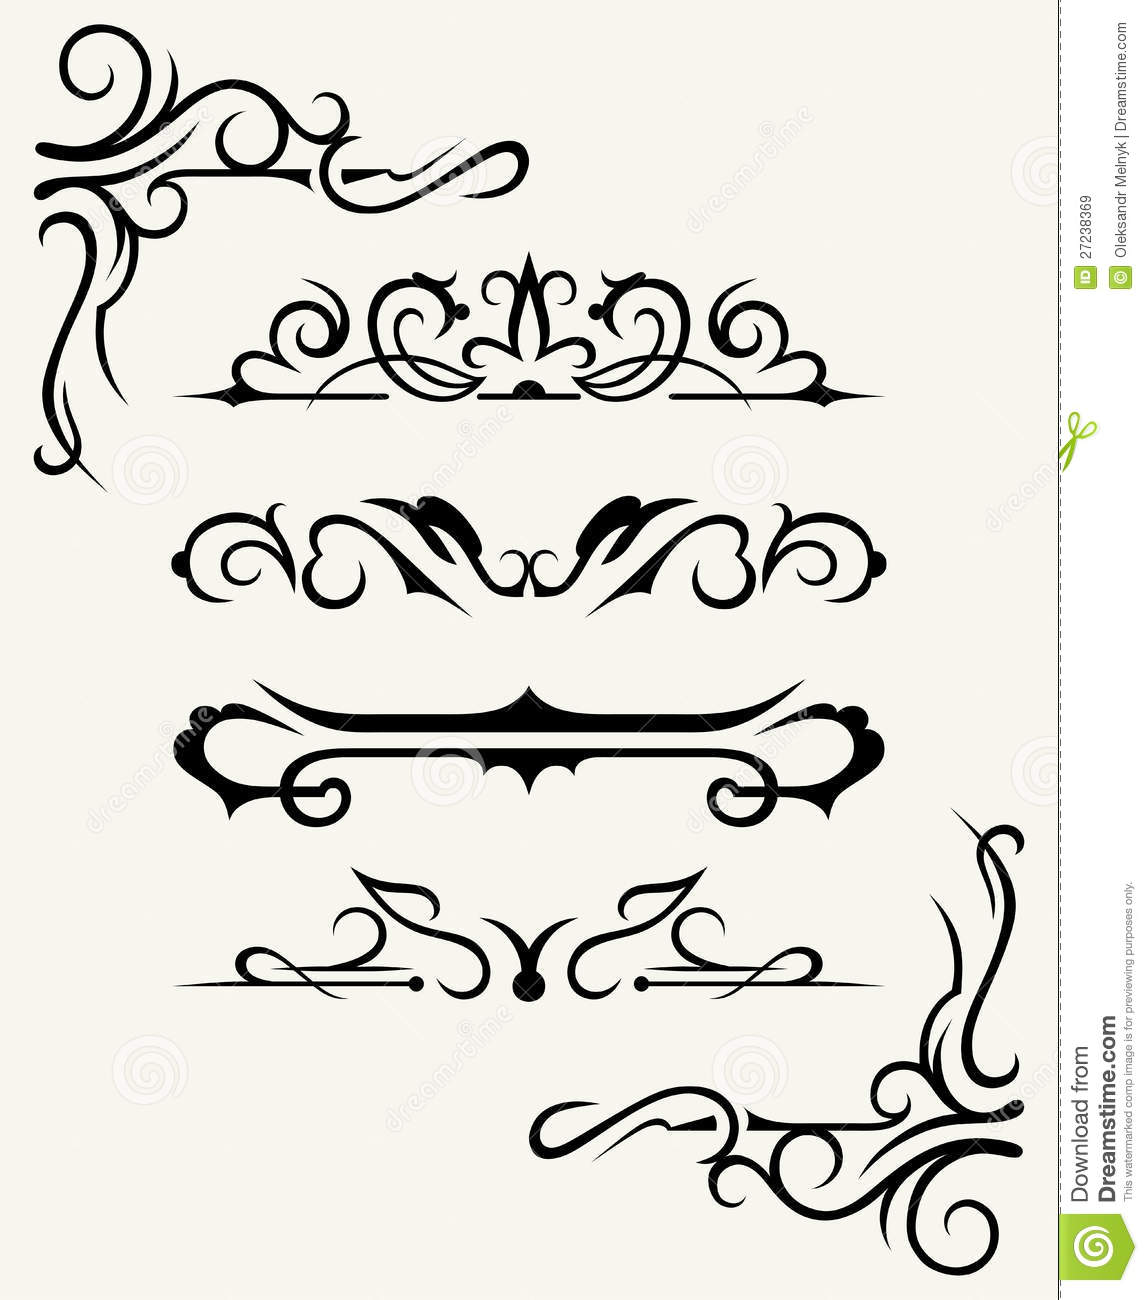 Download Calligraphic Design Elements And Page Decoration